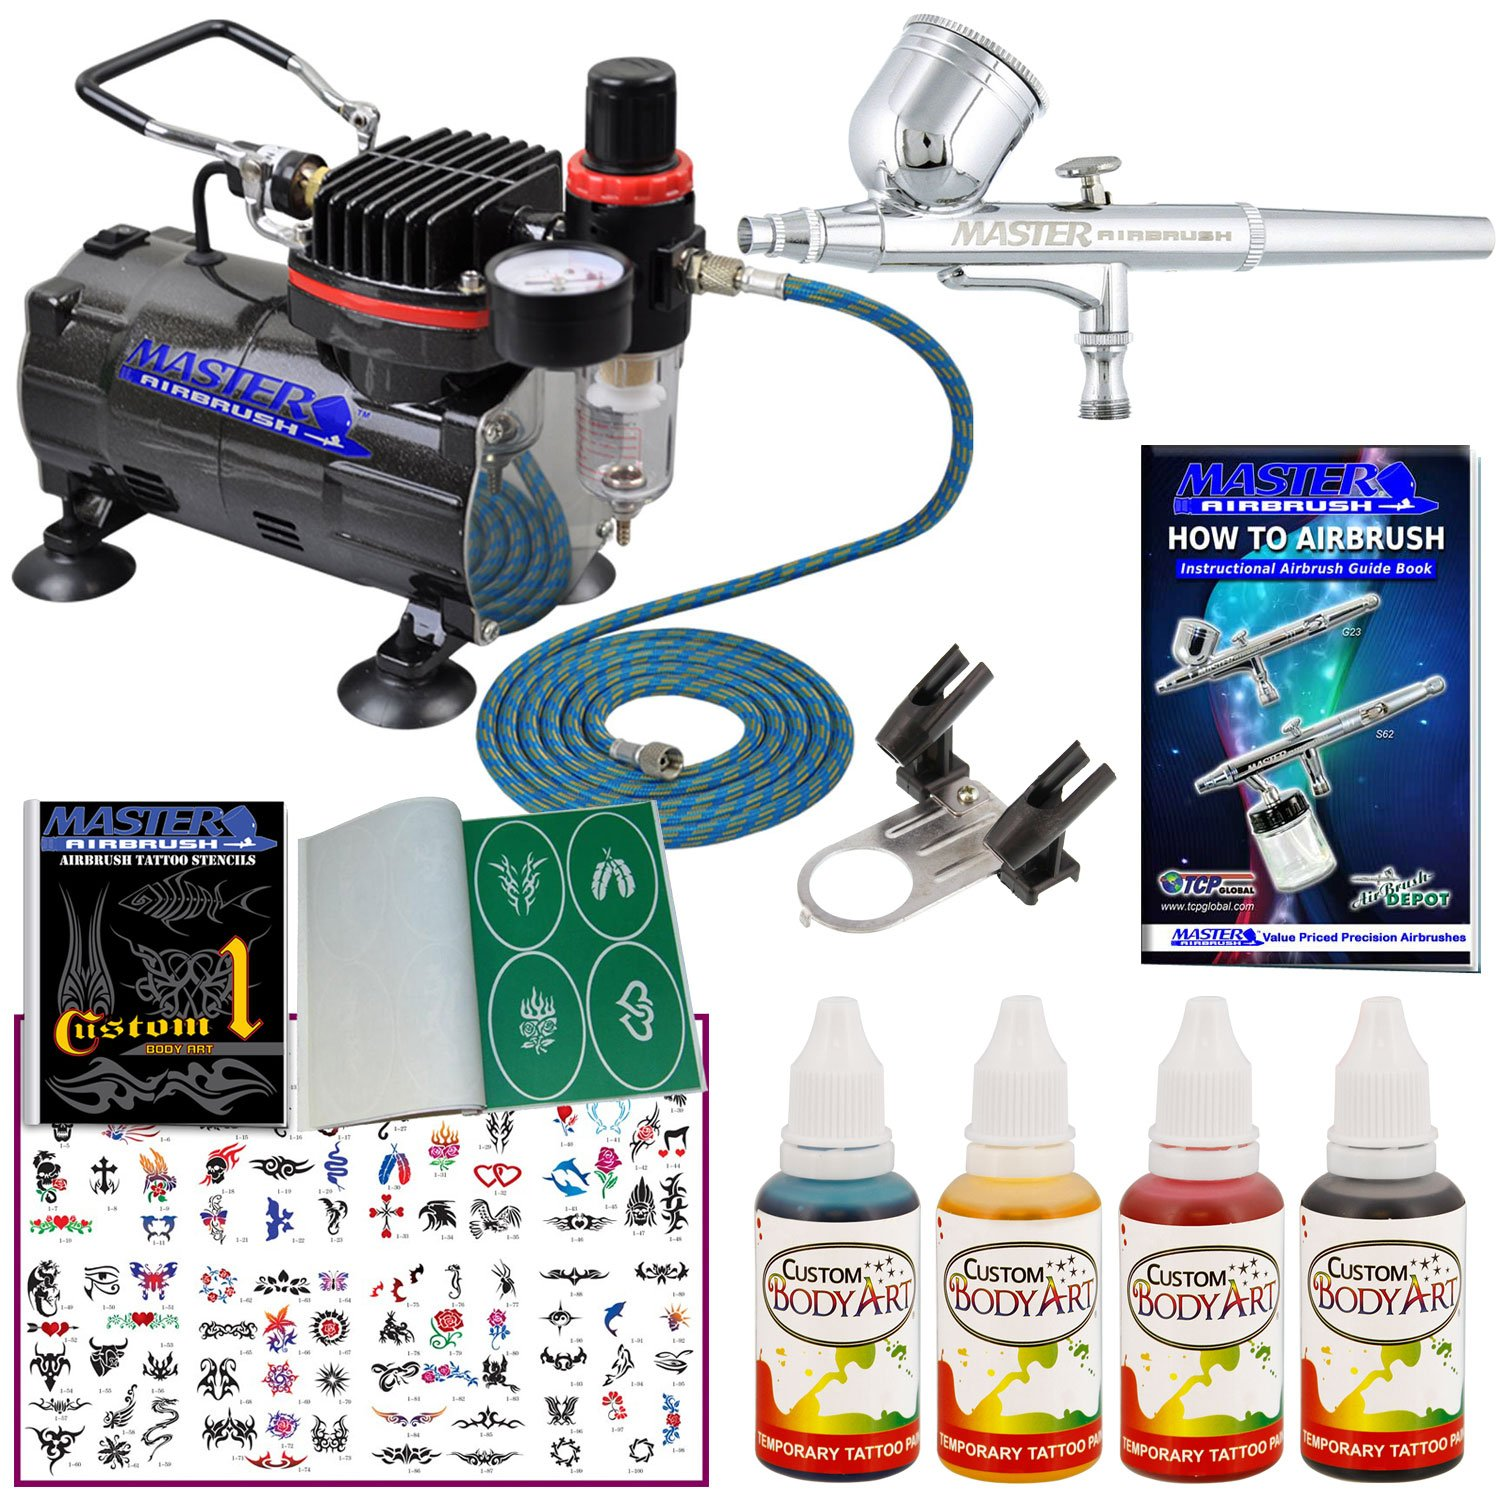 Master Airbrush Tattoo System. Master G22 Airbrush, Air Compressor, 100 Tattoo Stencils, 6' Air Hose, 4 Color Temporary Tattoo Ink in 1-oz Bottles Includes a How to Airbrush Training Book by Master Airbrush